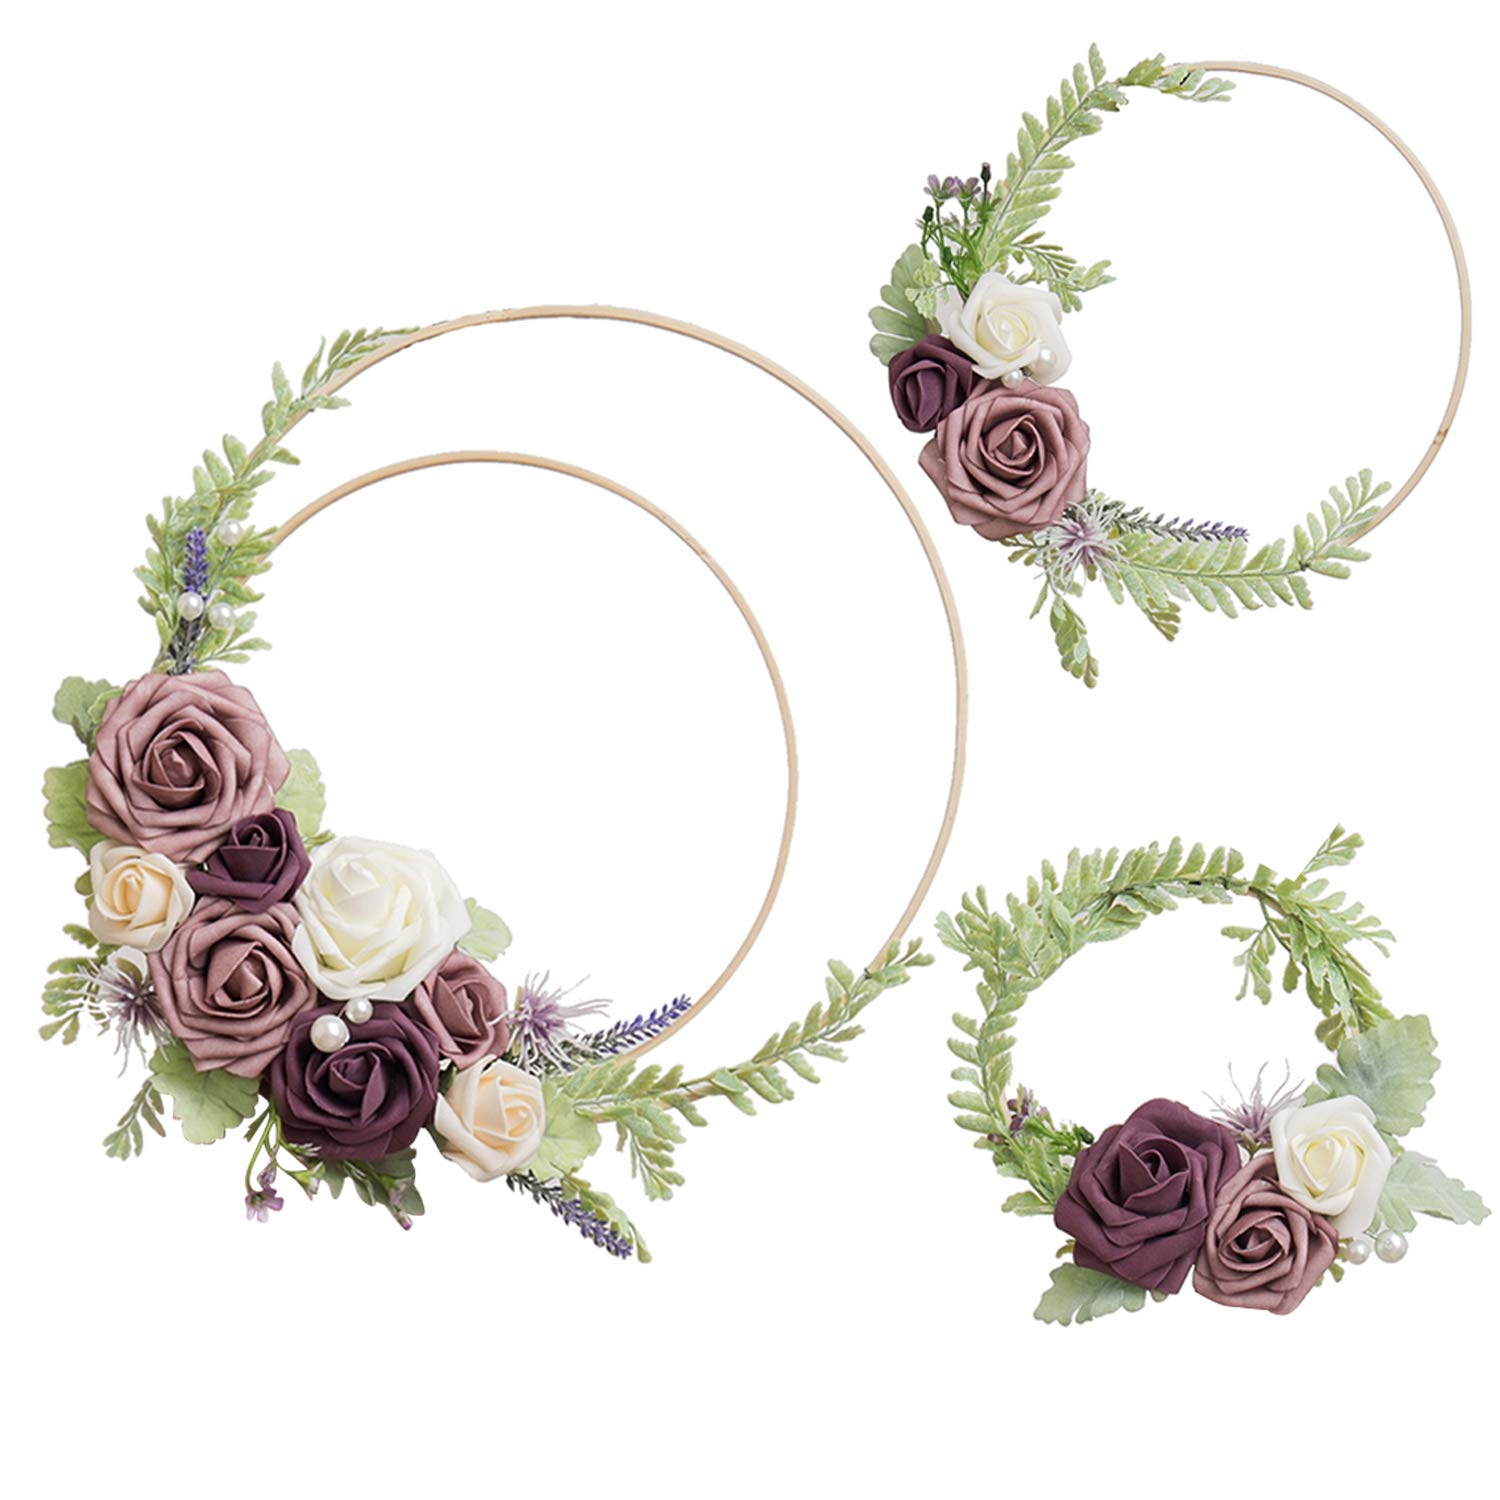 Ling's moment Floral Hoop Wreaths Set of 3 Dusty Rose Flower Wreaths for Wedding Backdrop Nursery Decor